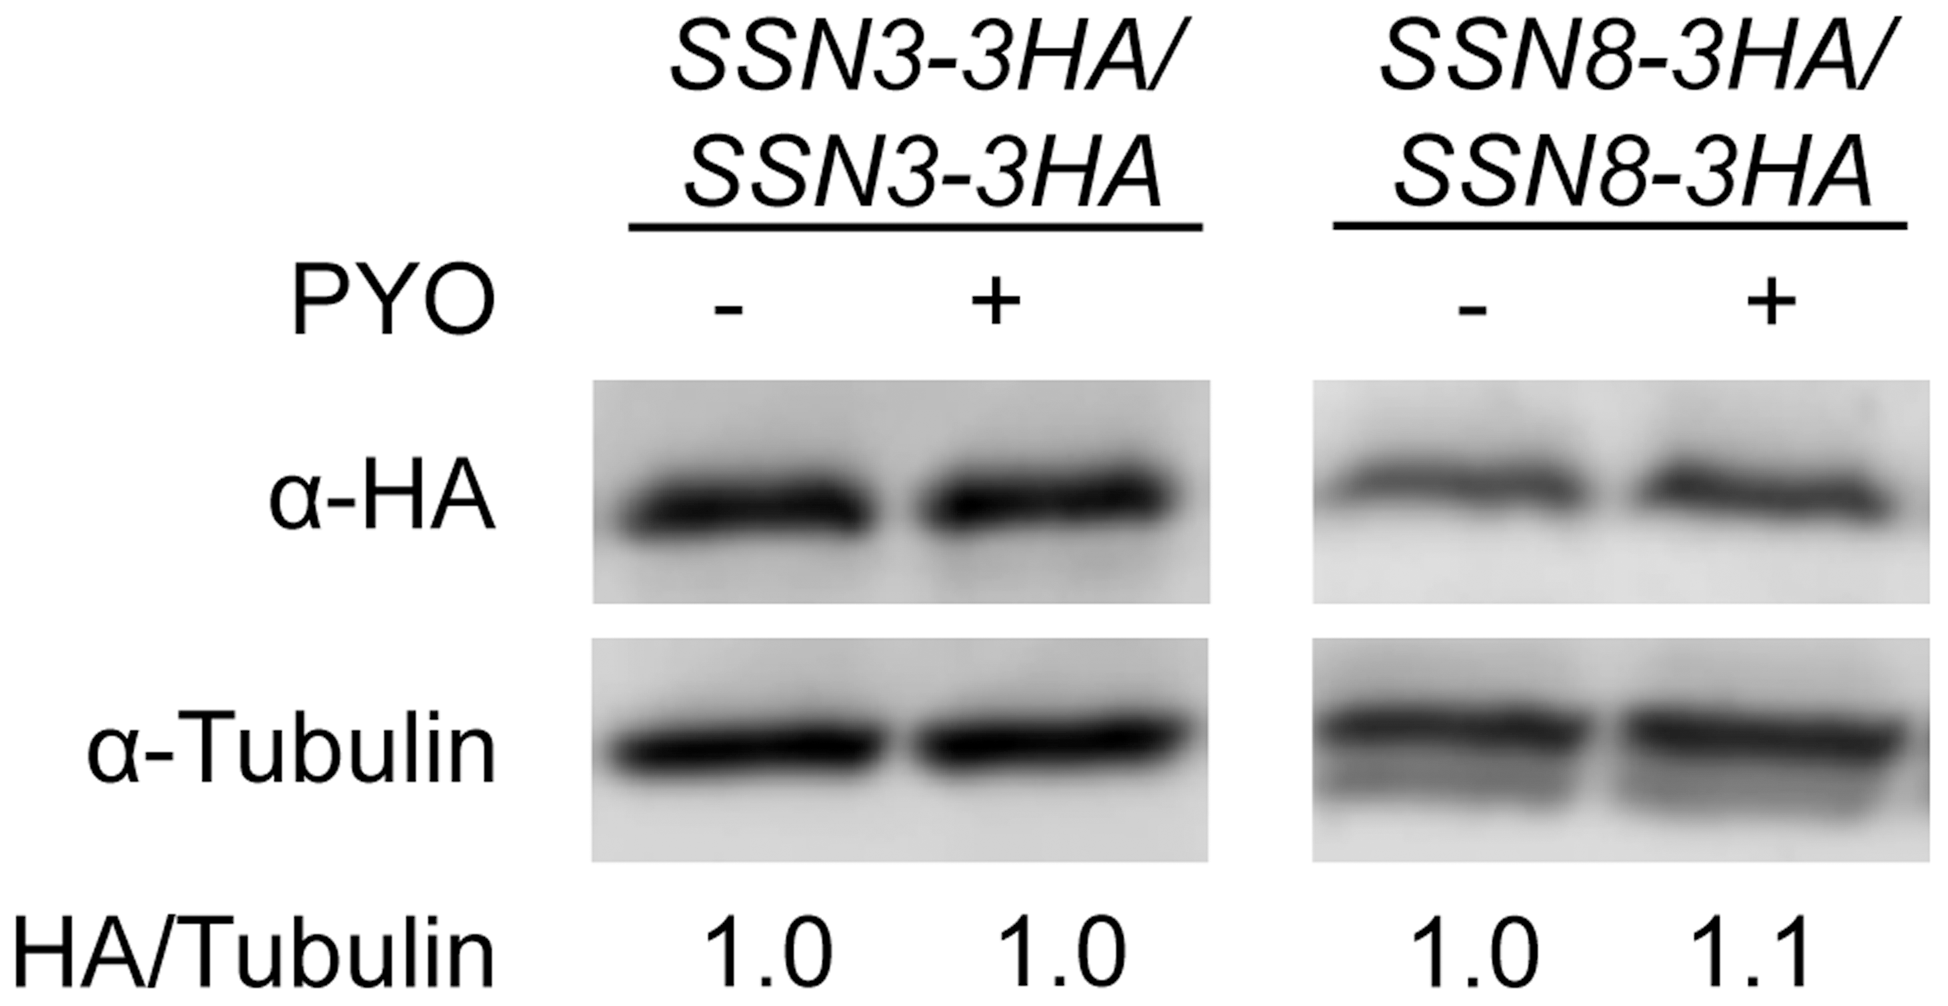 The stability of Ssn3 and Ssn8 is unaffected by PYO.